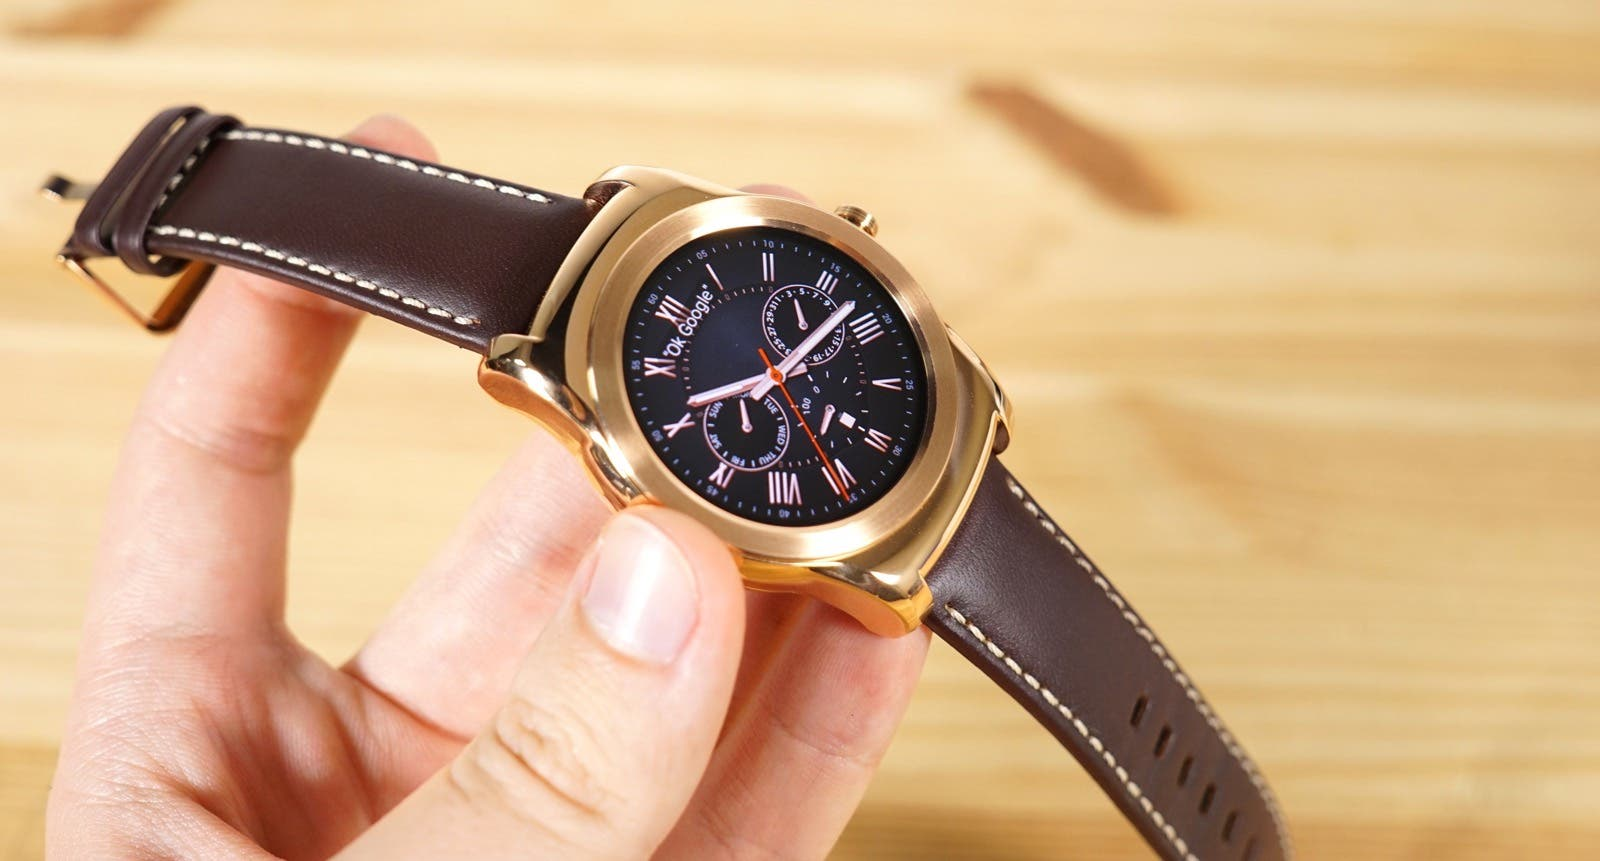 LG Watch Urbane in pink Gold in der Hand